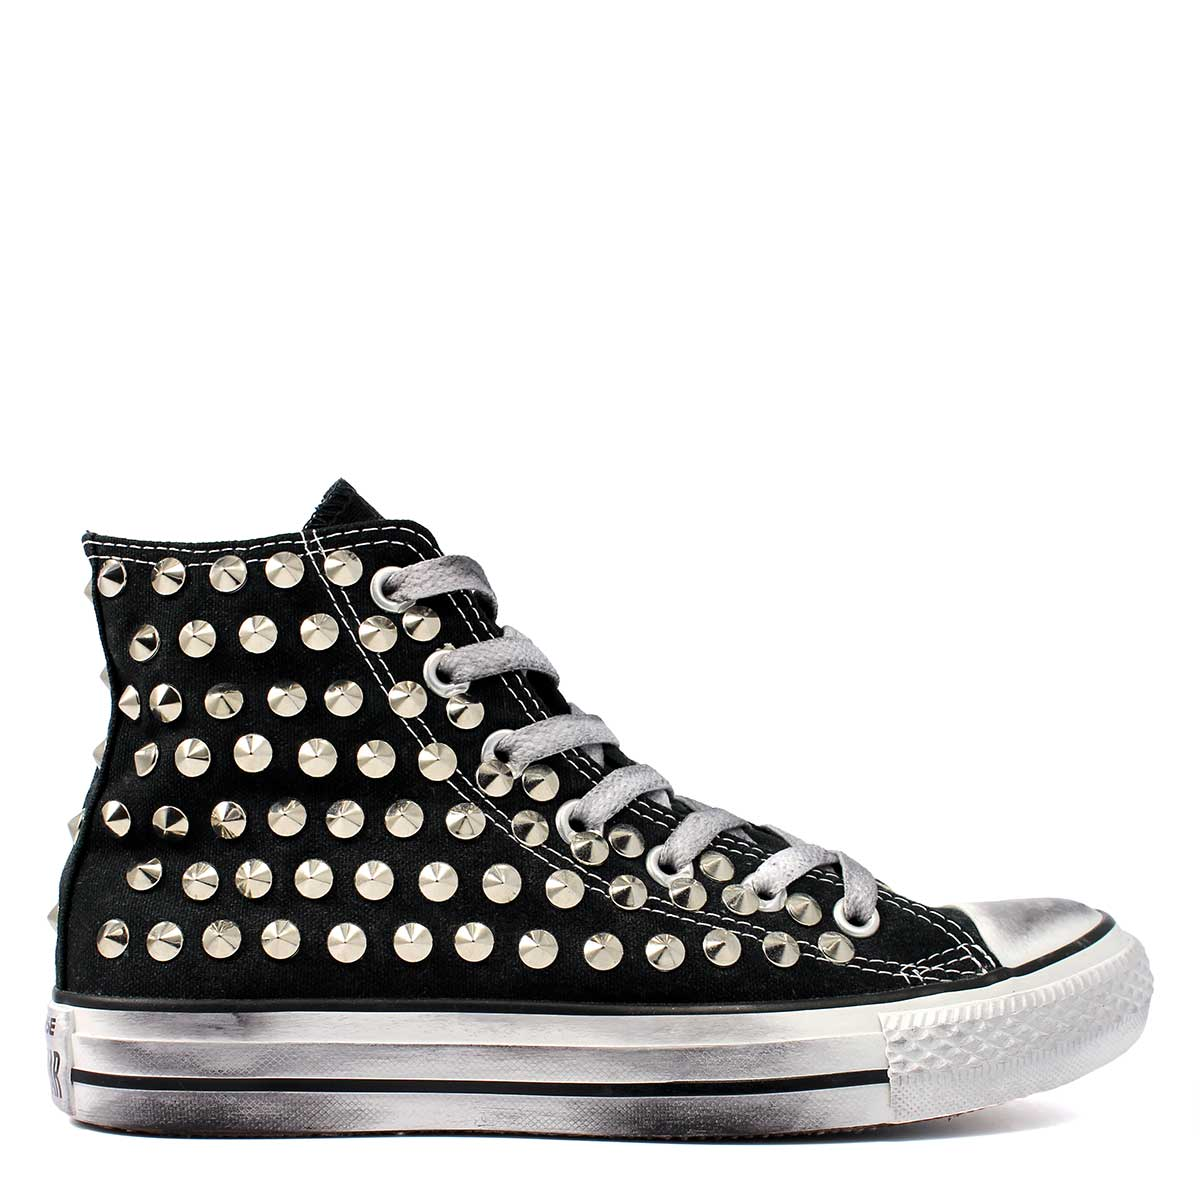 converse all star con borchie